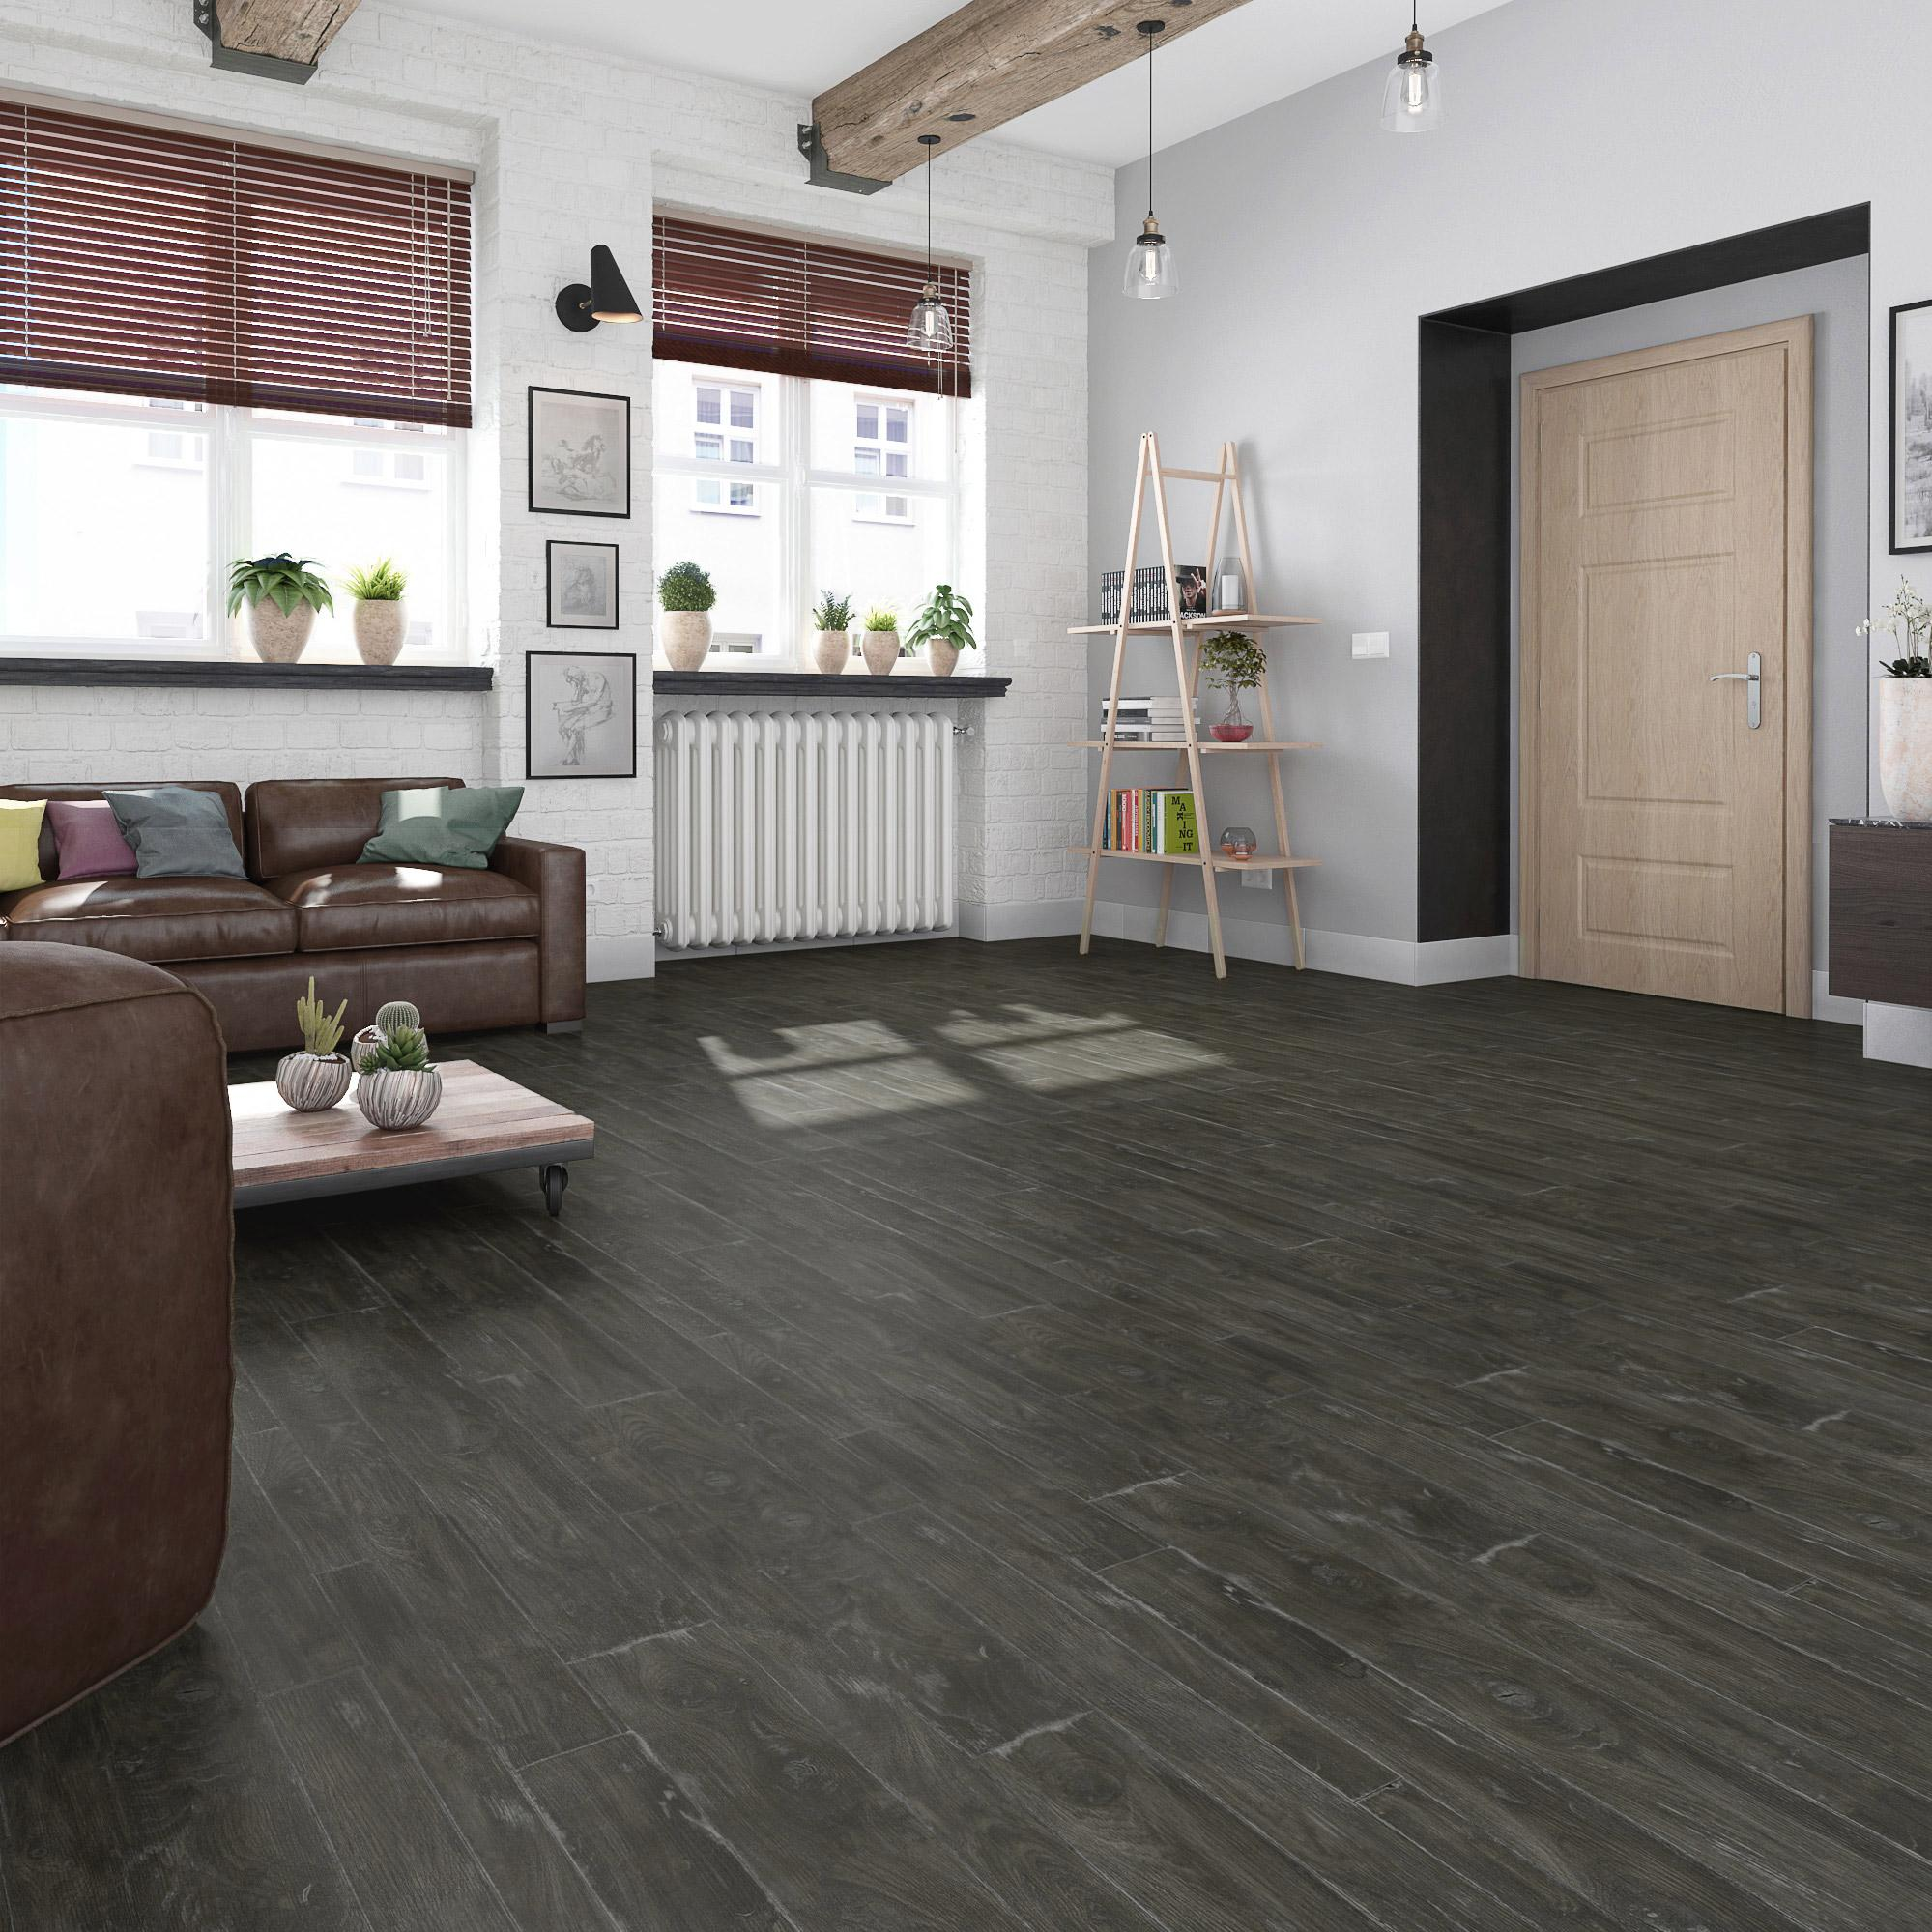 Sol PVC marron bruges dark marron, GERFLOR Texline l.4 m